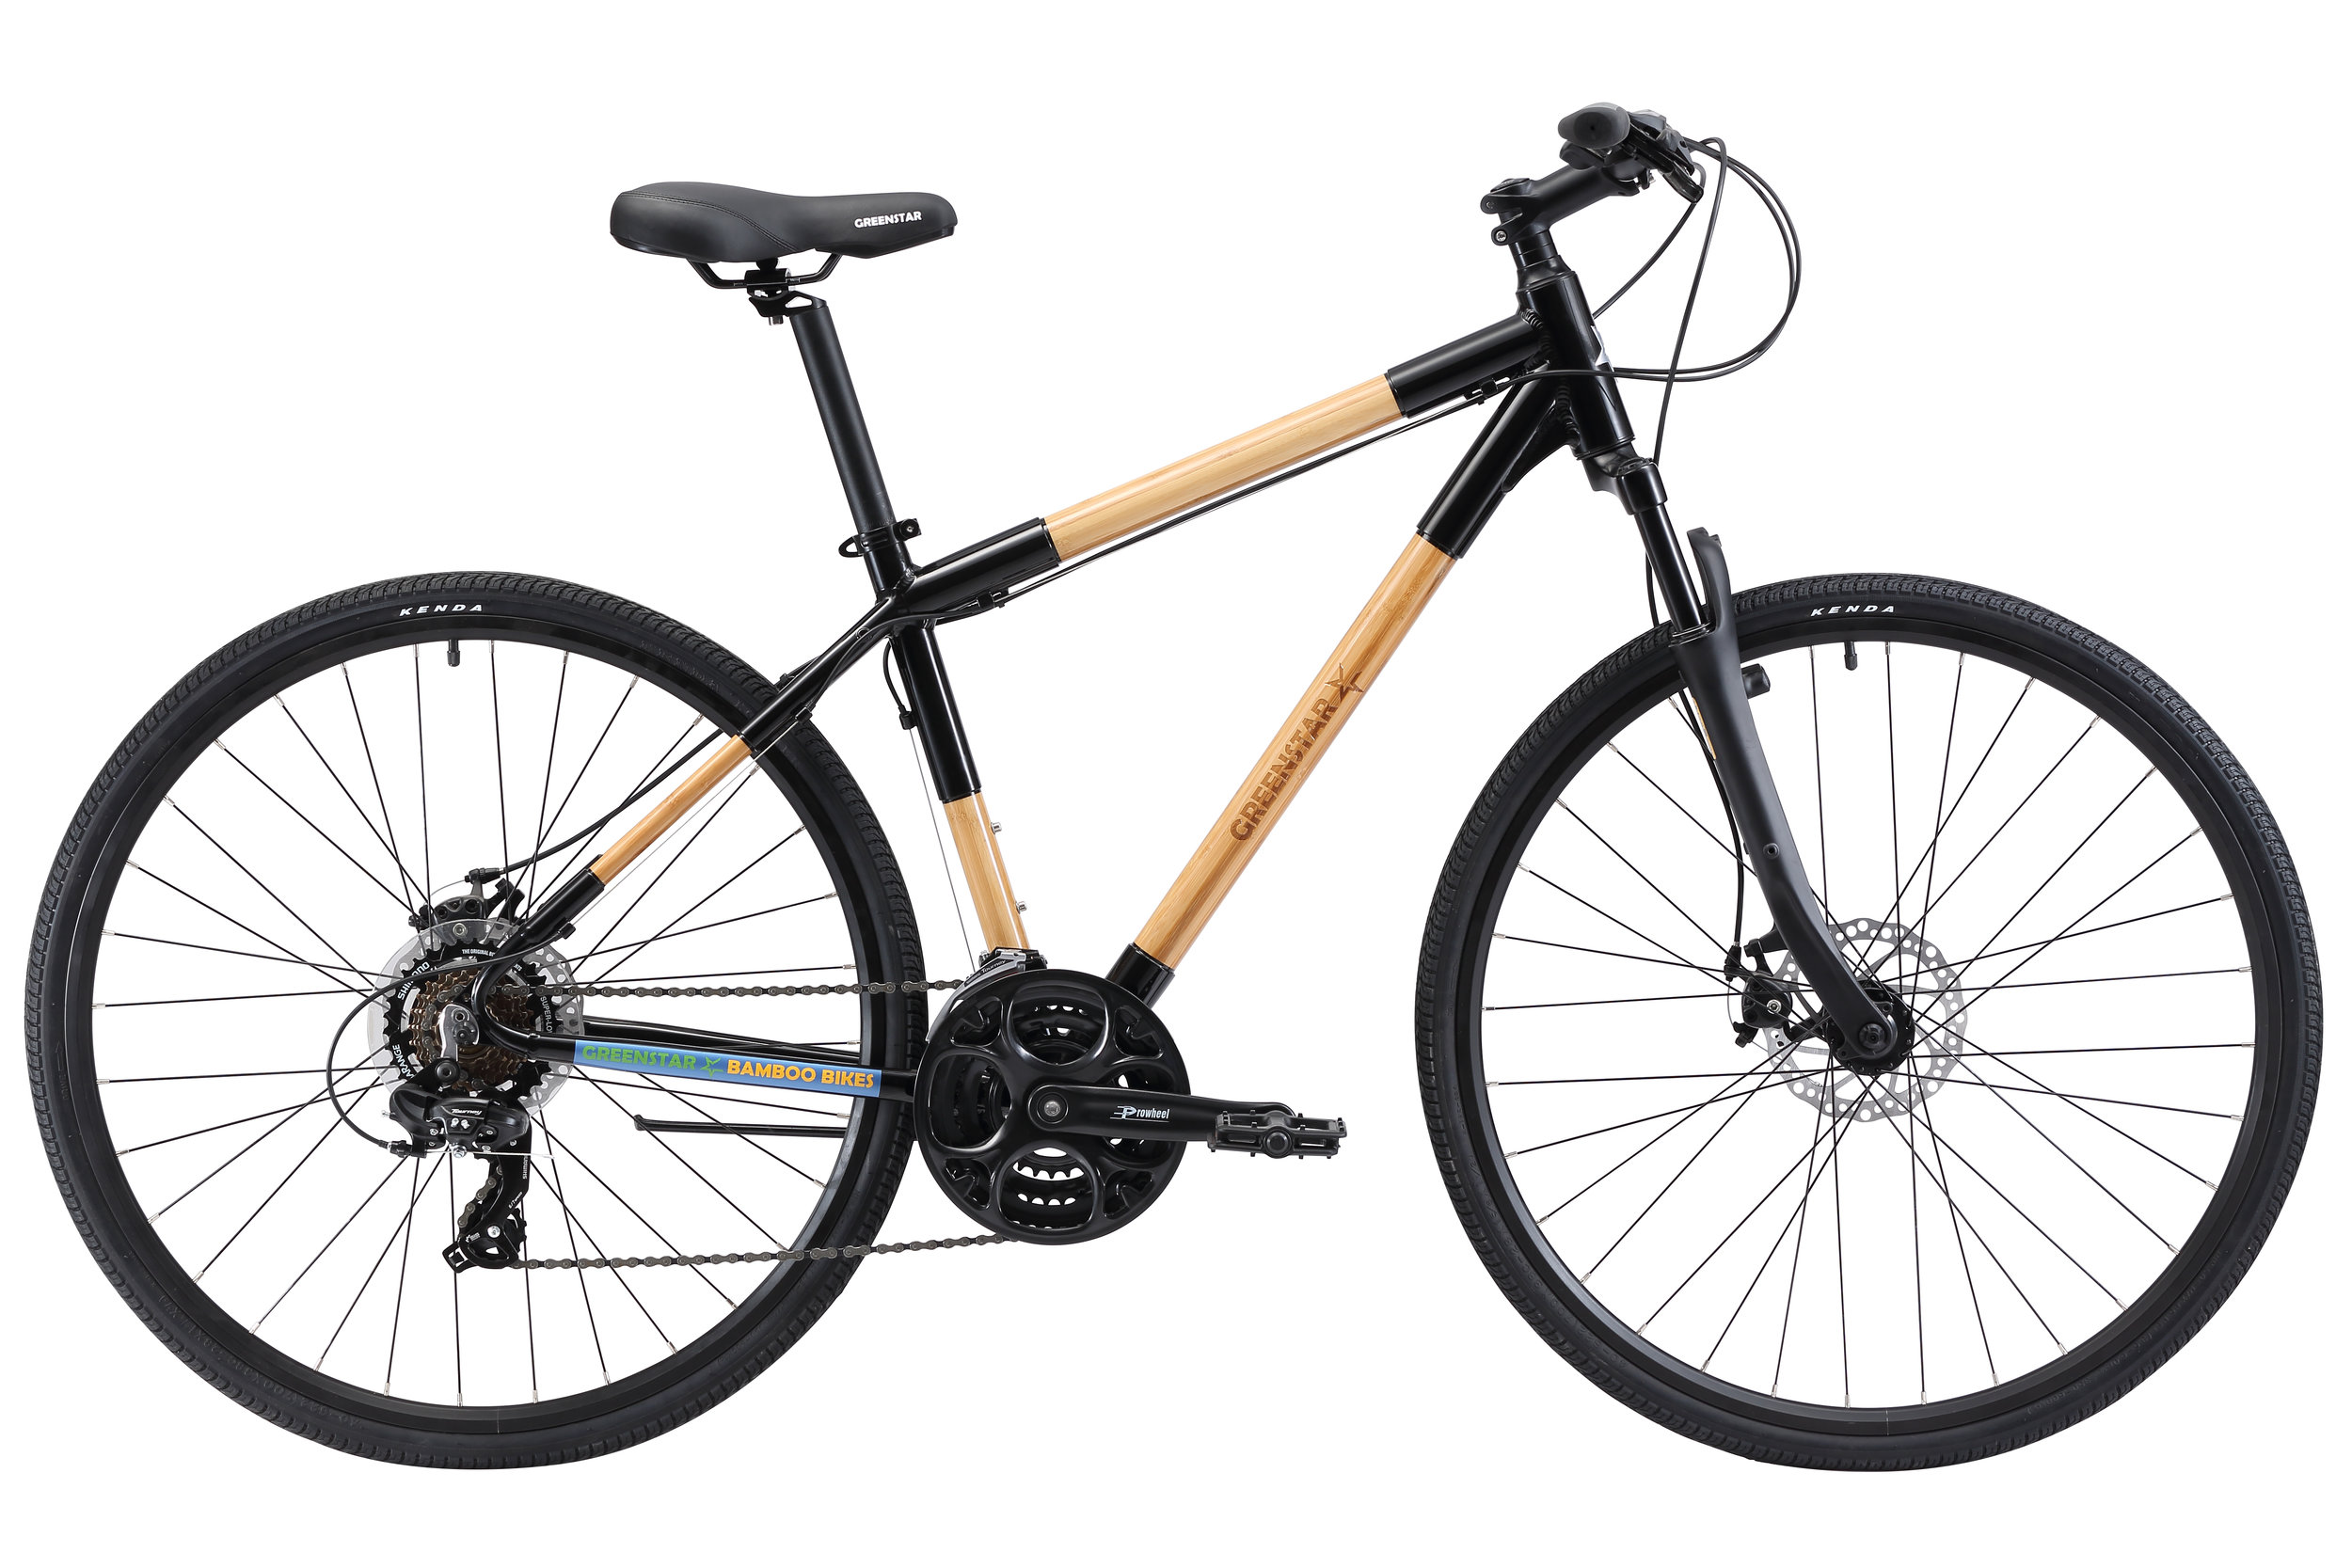 EcoCross Hybrid bamboo aluminum bike side 201708.jpg